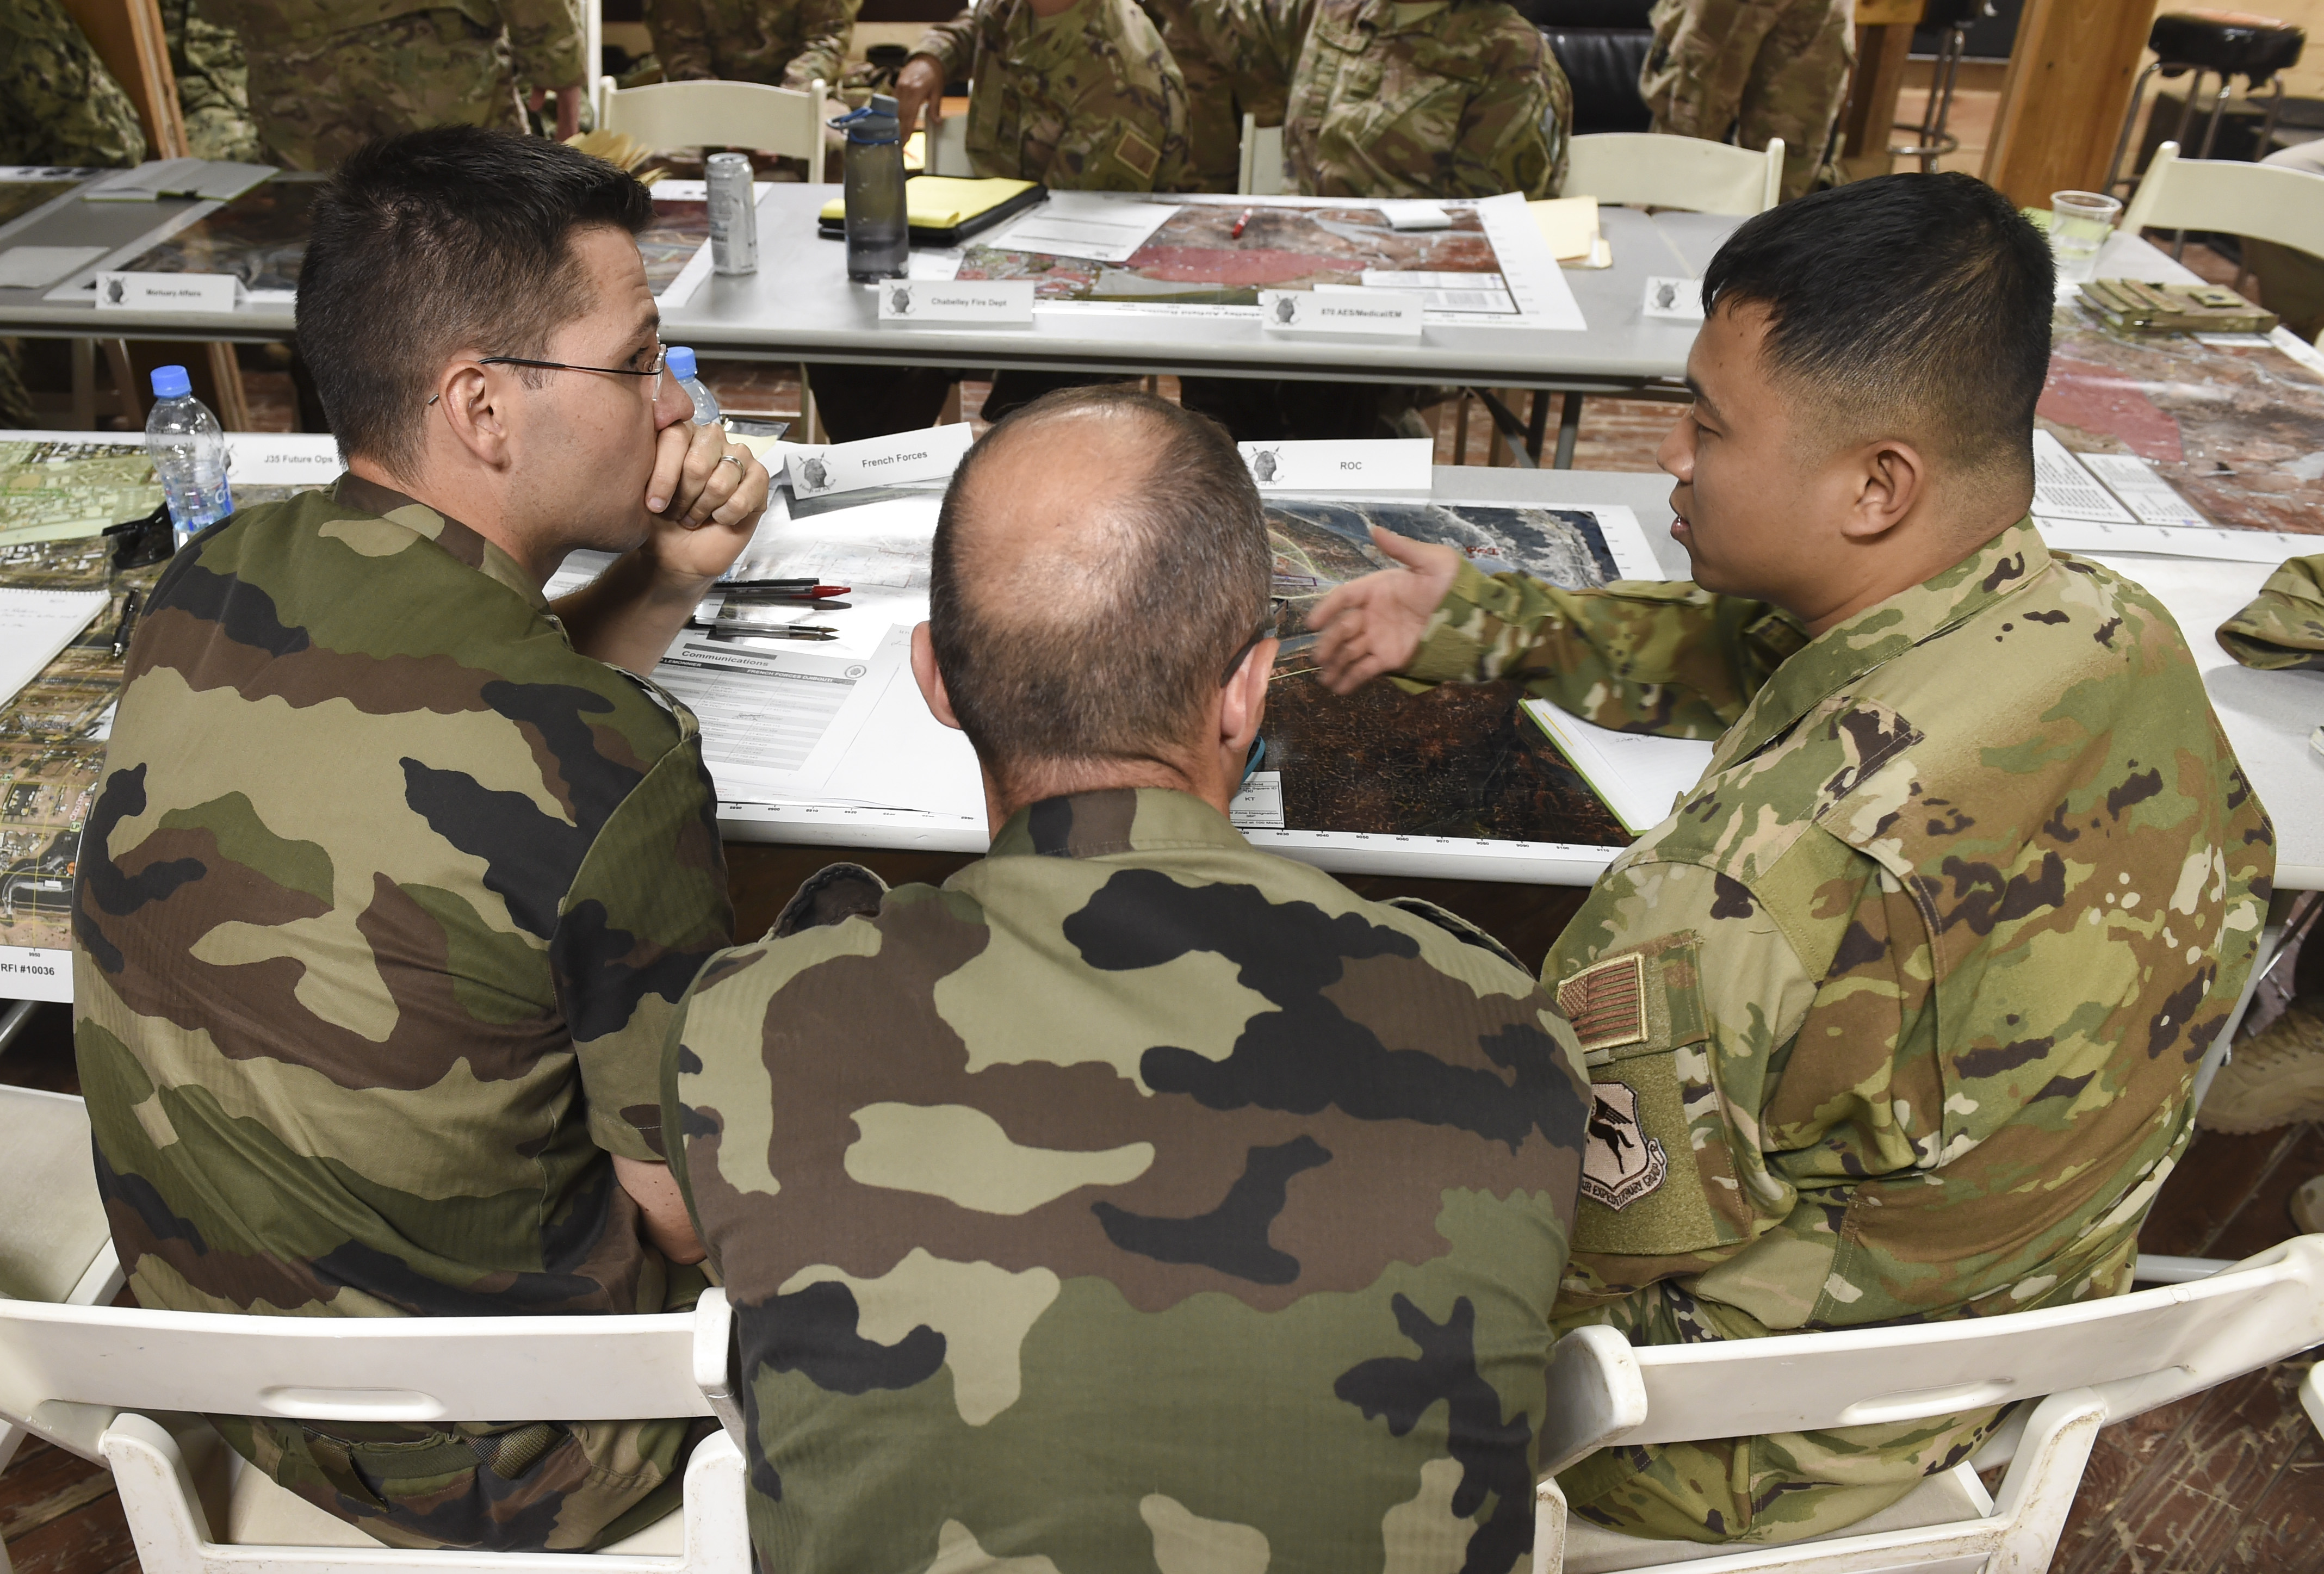 U.S. Air Force Maj. Manh Pham (right), assigned to Combined Joint Task Force-Horn of Africa, speaks with members of the French Army during a bilateral tabletop exercise focusing on multiple unit support and response to a mass casualty incident at Camp Lemonnier, Sept. 6, 2017. The tabletop exercise was a first step in preparation for future bilateral exercises with French forces to further strengthen military relationships and medical-response capabilities in Djibouti. (U.S. Air Force photo by Staff Sgt. Eboni Prince)